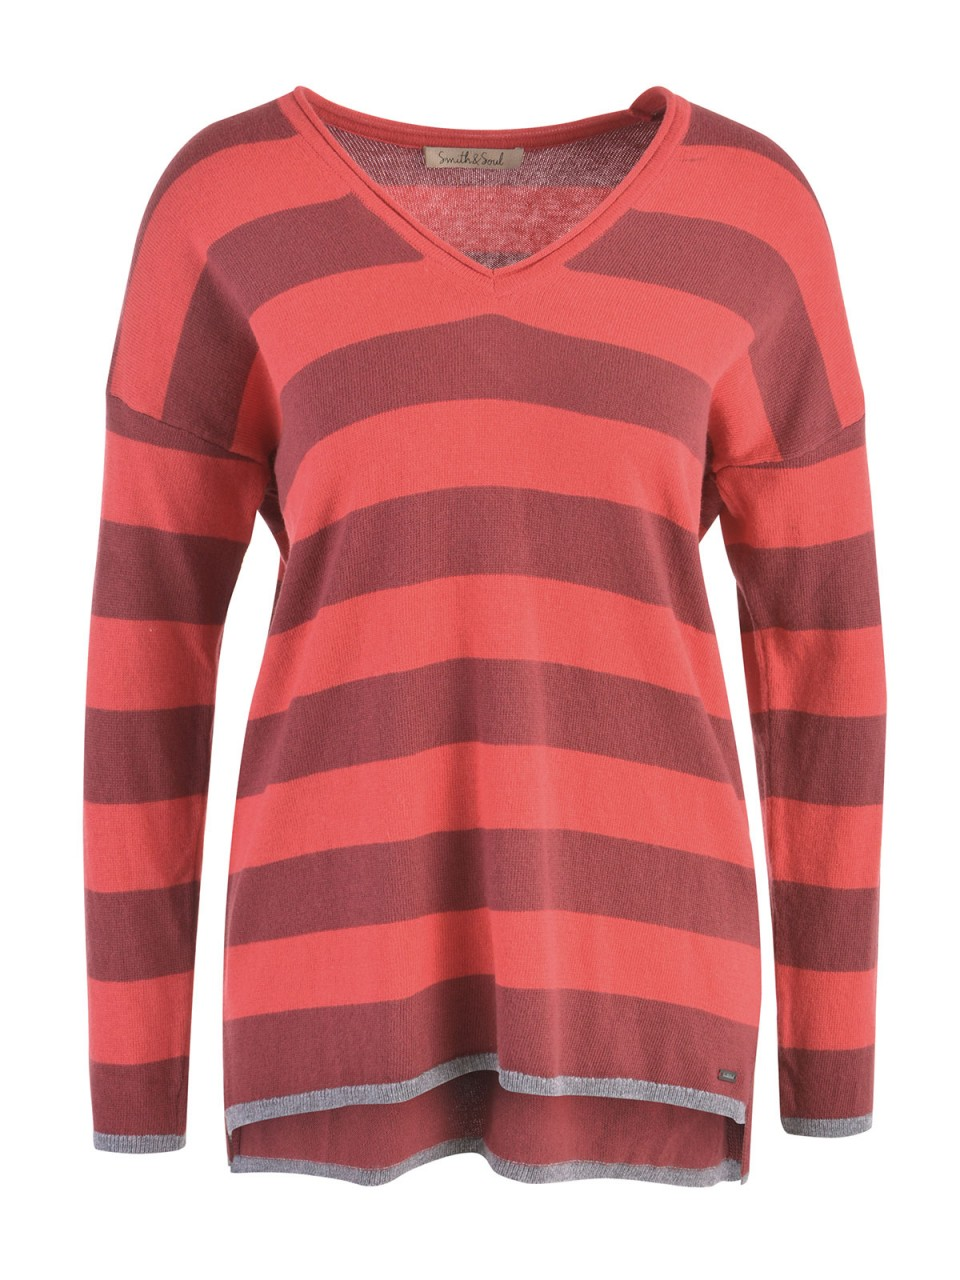 smith-amp-soul-damen-pullover-rot